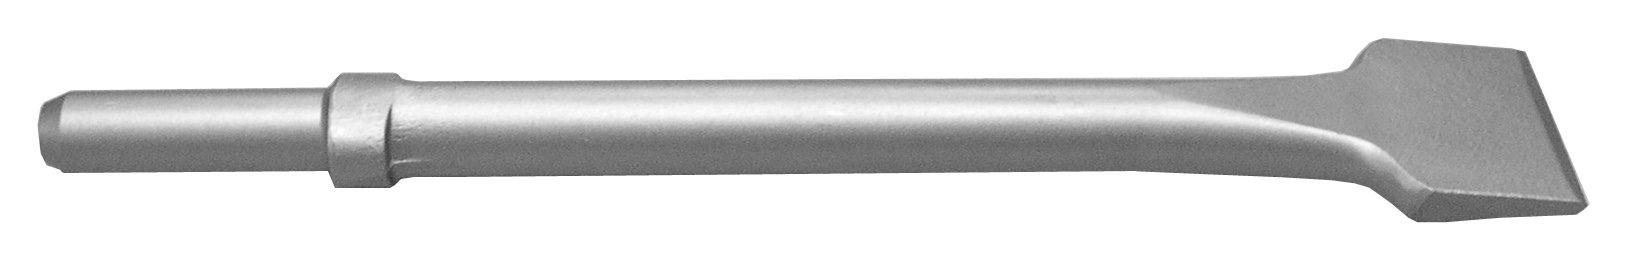 Champion Chisel, 12-Inch Long by 2-Inch Wide .680 Round Shank Oval Collar Chipping Hammer Chisel